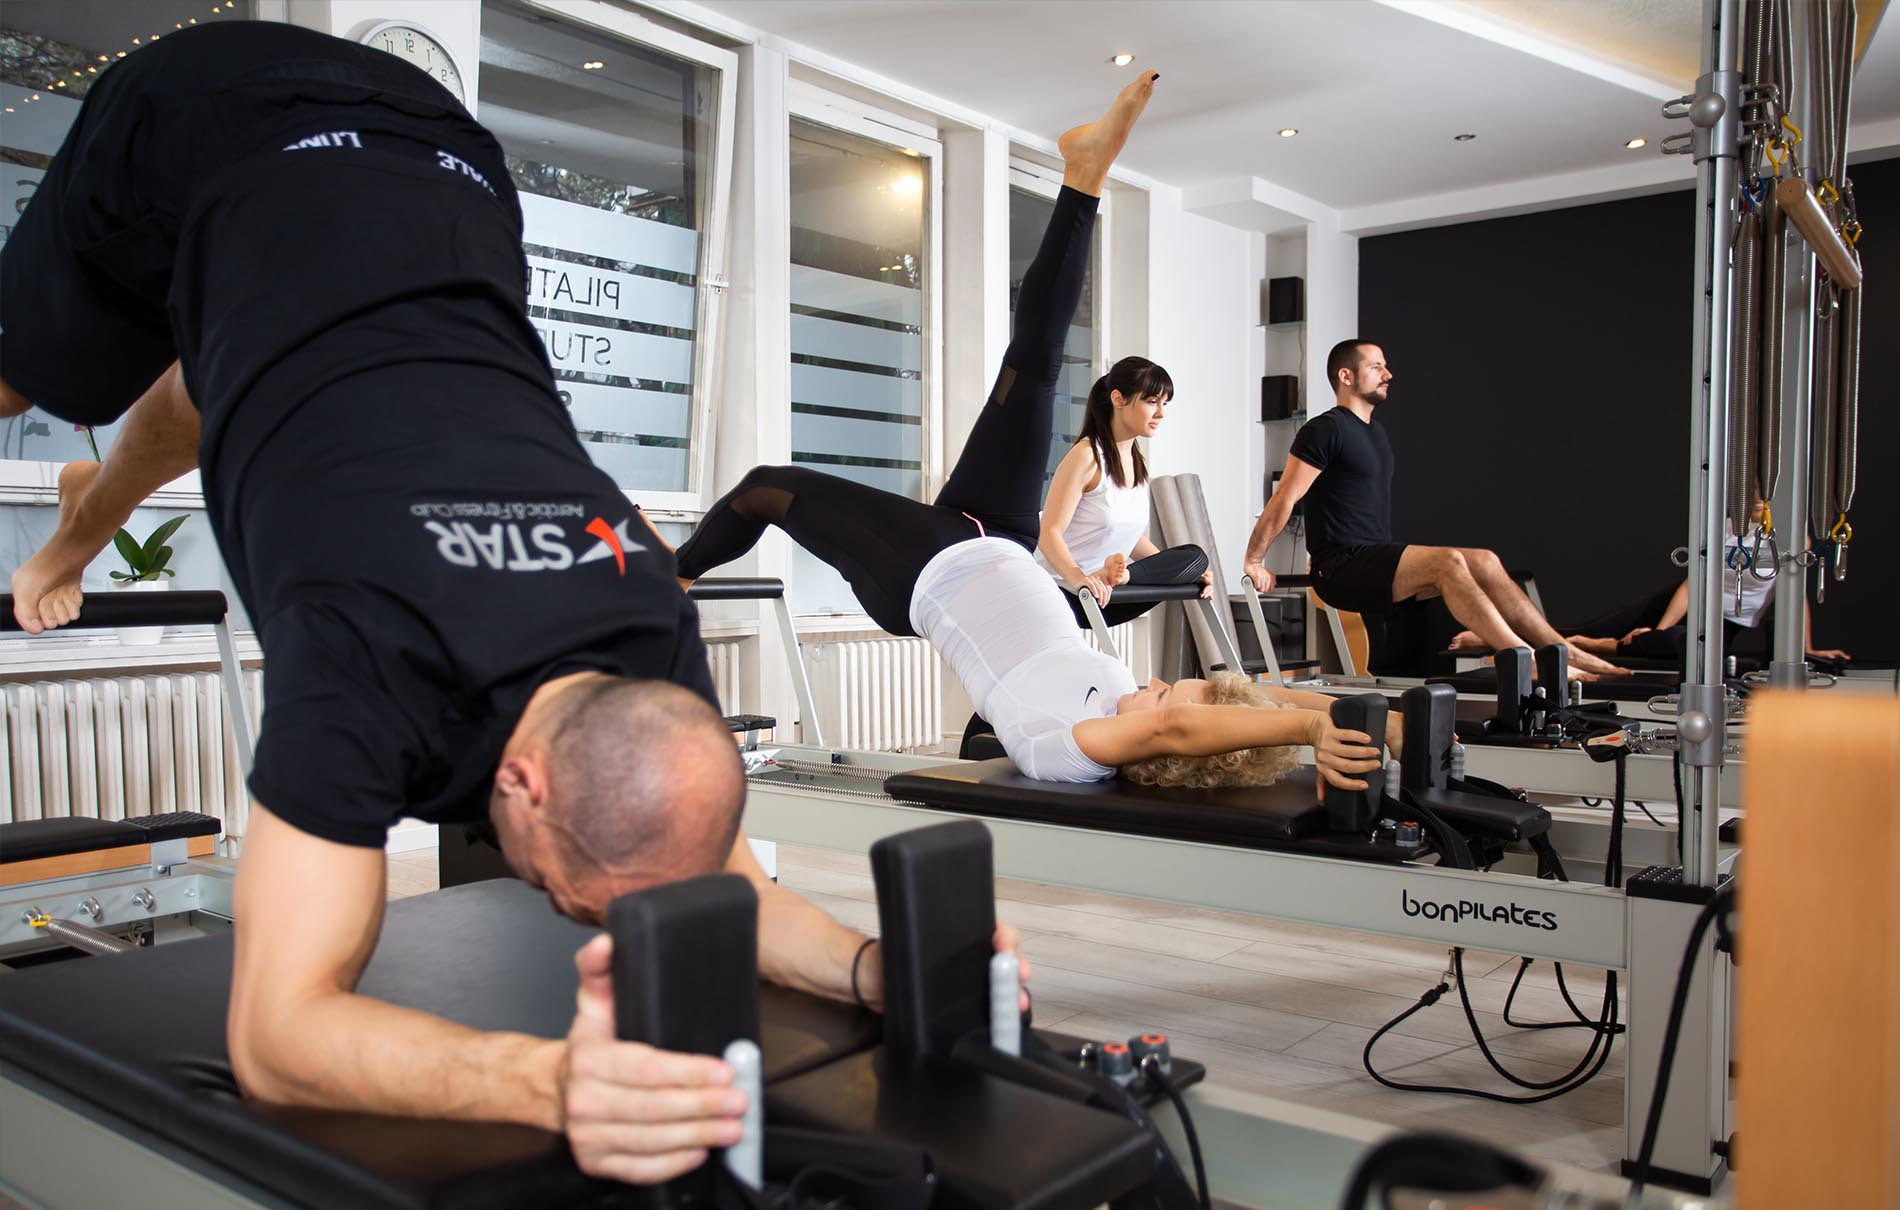 Pilates Studio Star Vracar